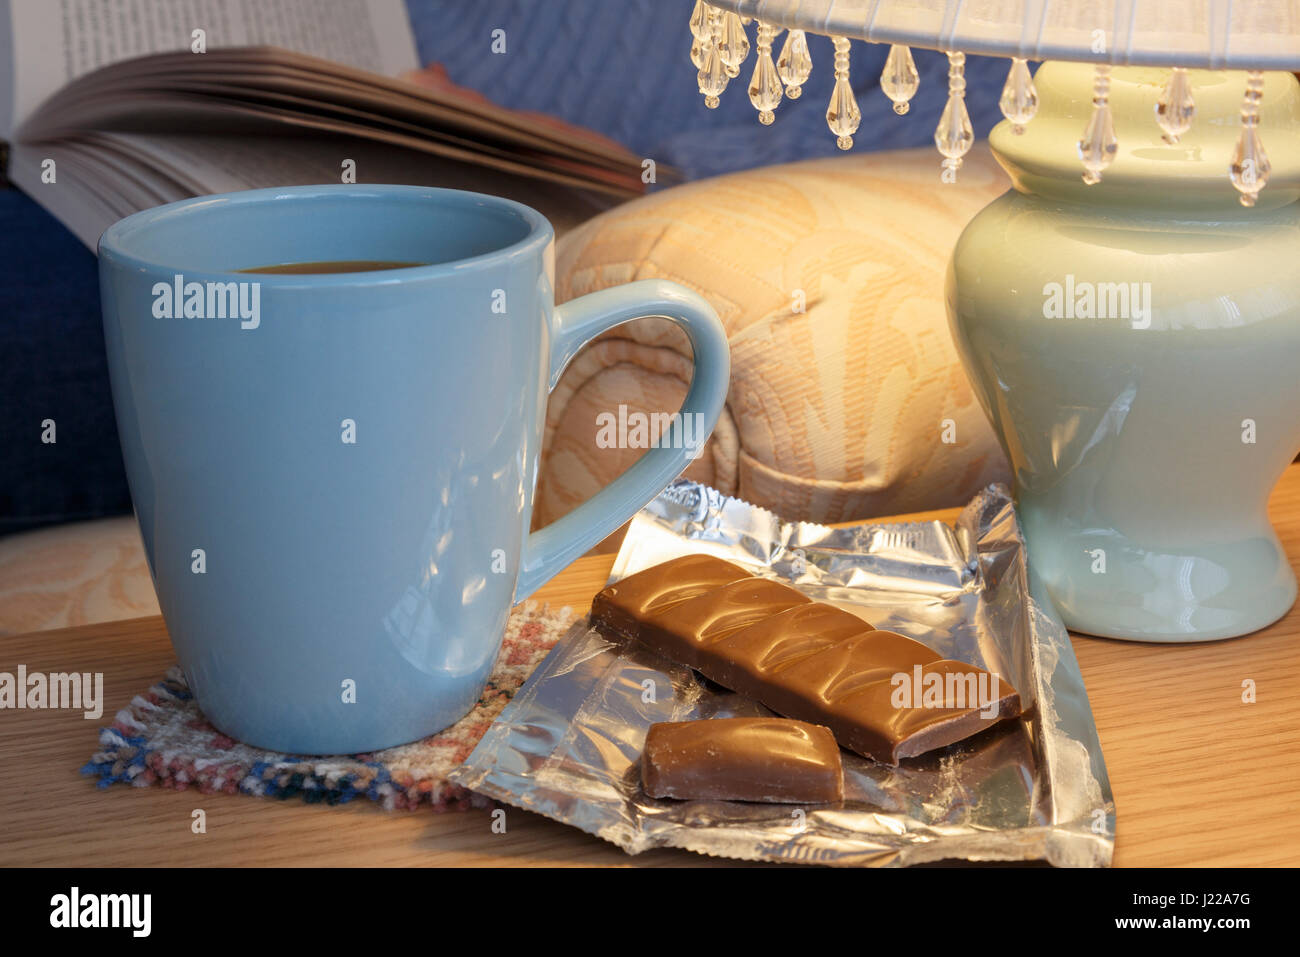 Everyday lifestyle homely hygge scene of a person relaxing reading a book with mug of coffee and chocolate by a - Stock Image